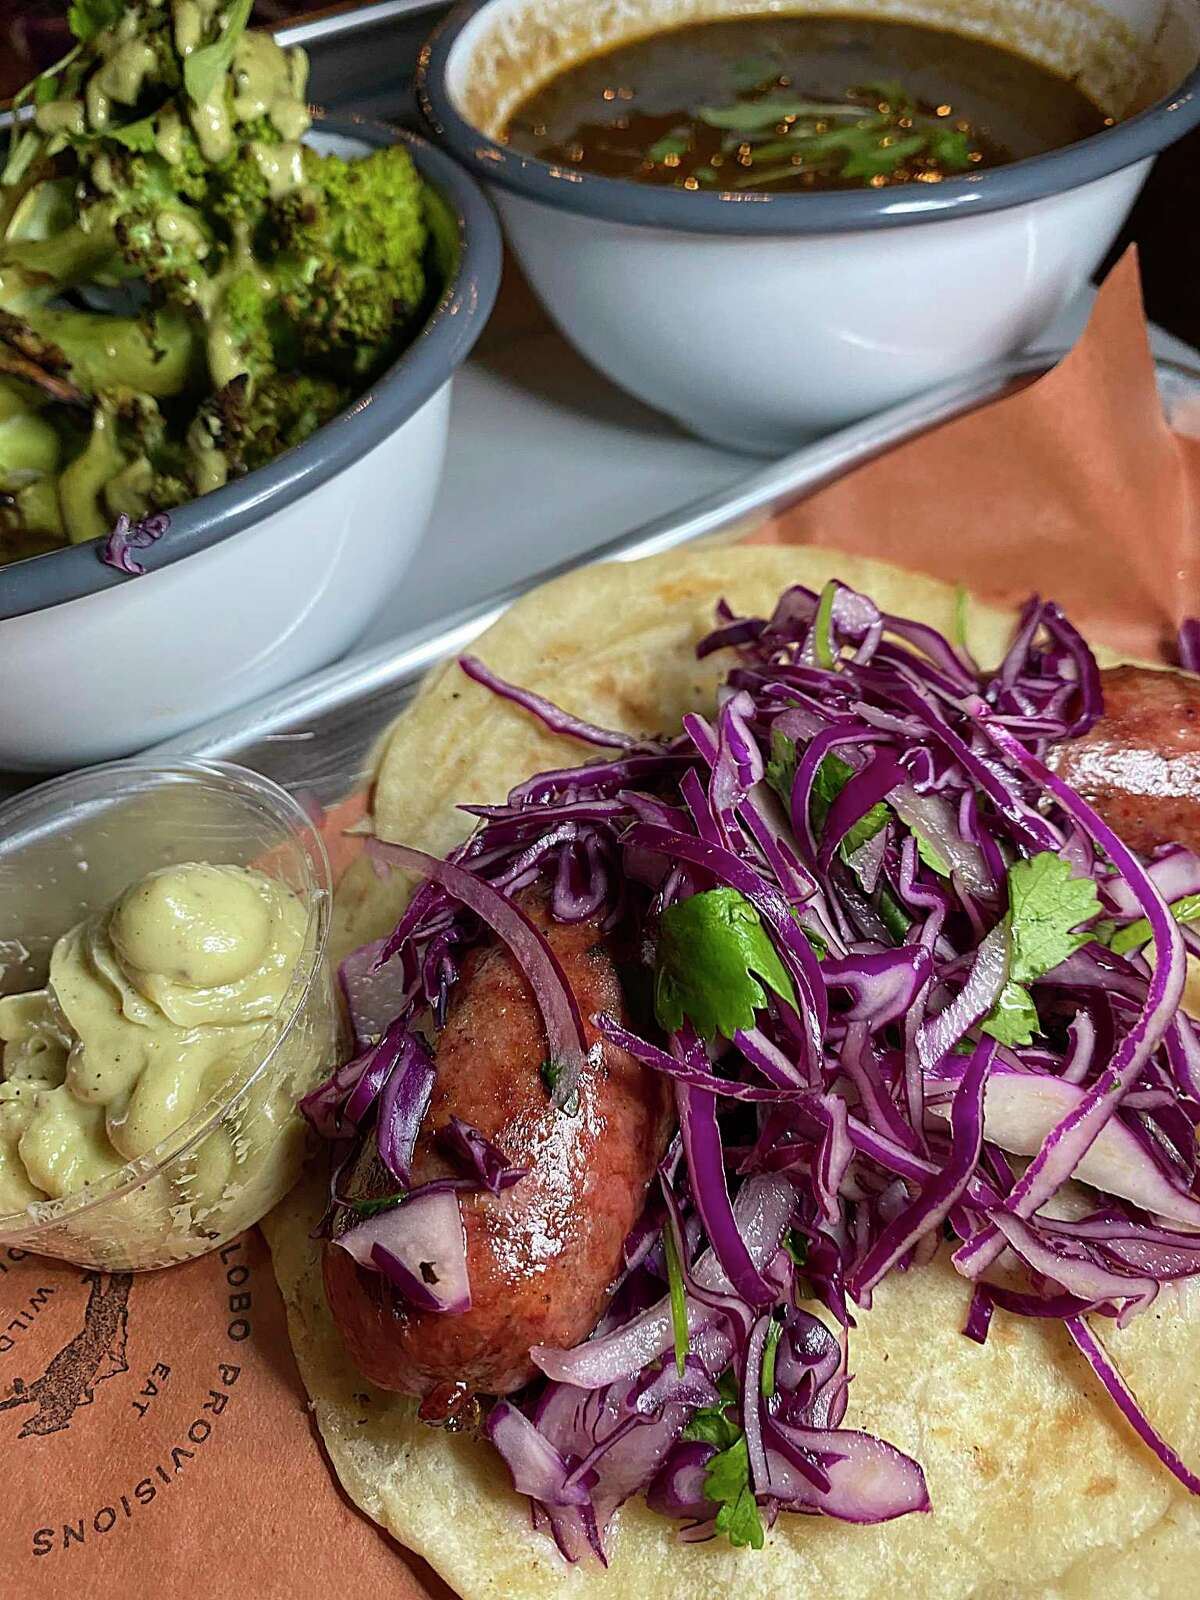 The menu includes a grilled daily vegetable (cauliflower, in this case), heirloom beans and a housemade wild boar hot link sausage with pickled cabbage slaw and garlic aioli at Lobo Provisions.